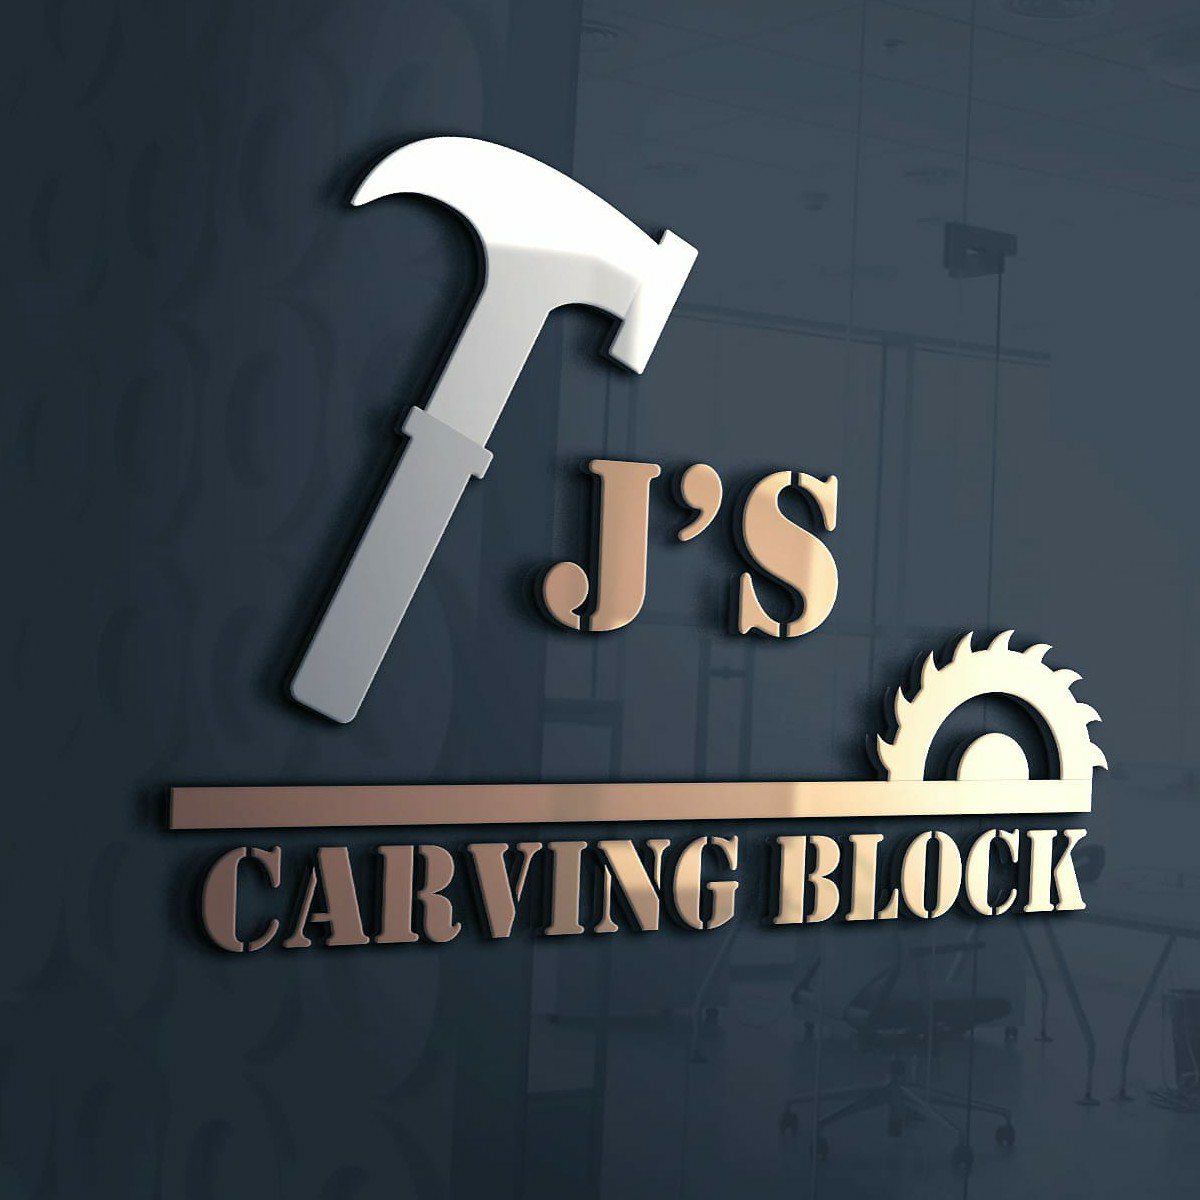 J's Carving Block